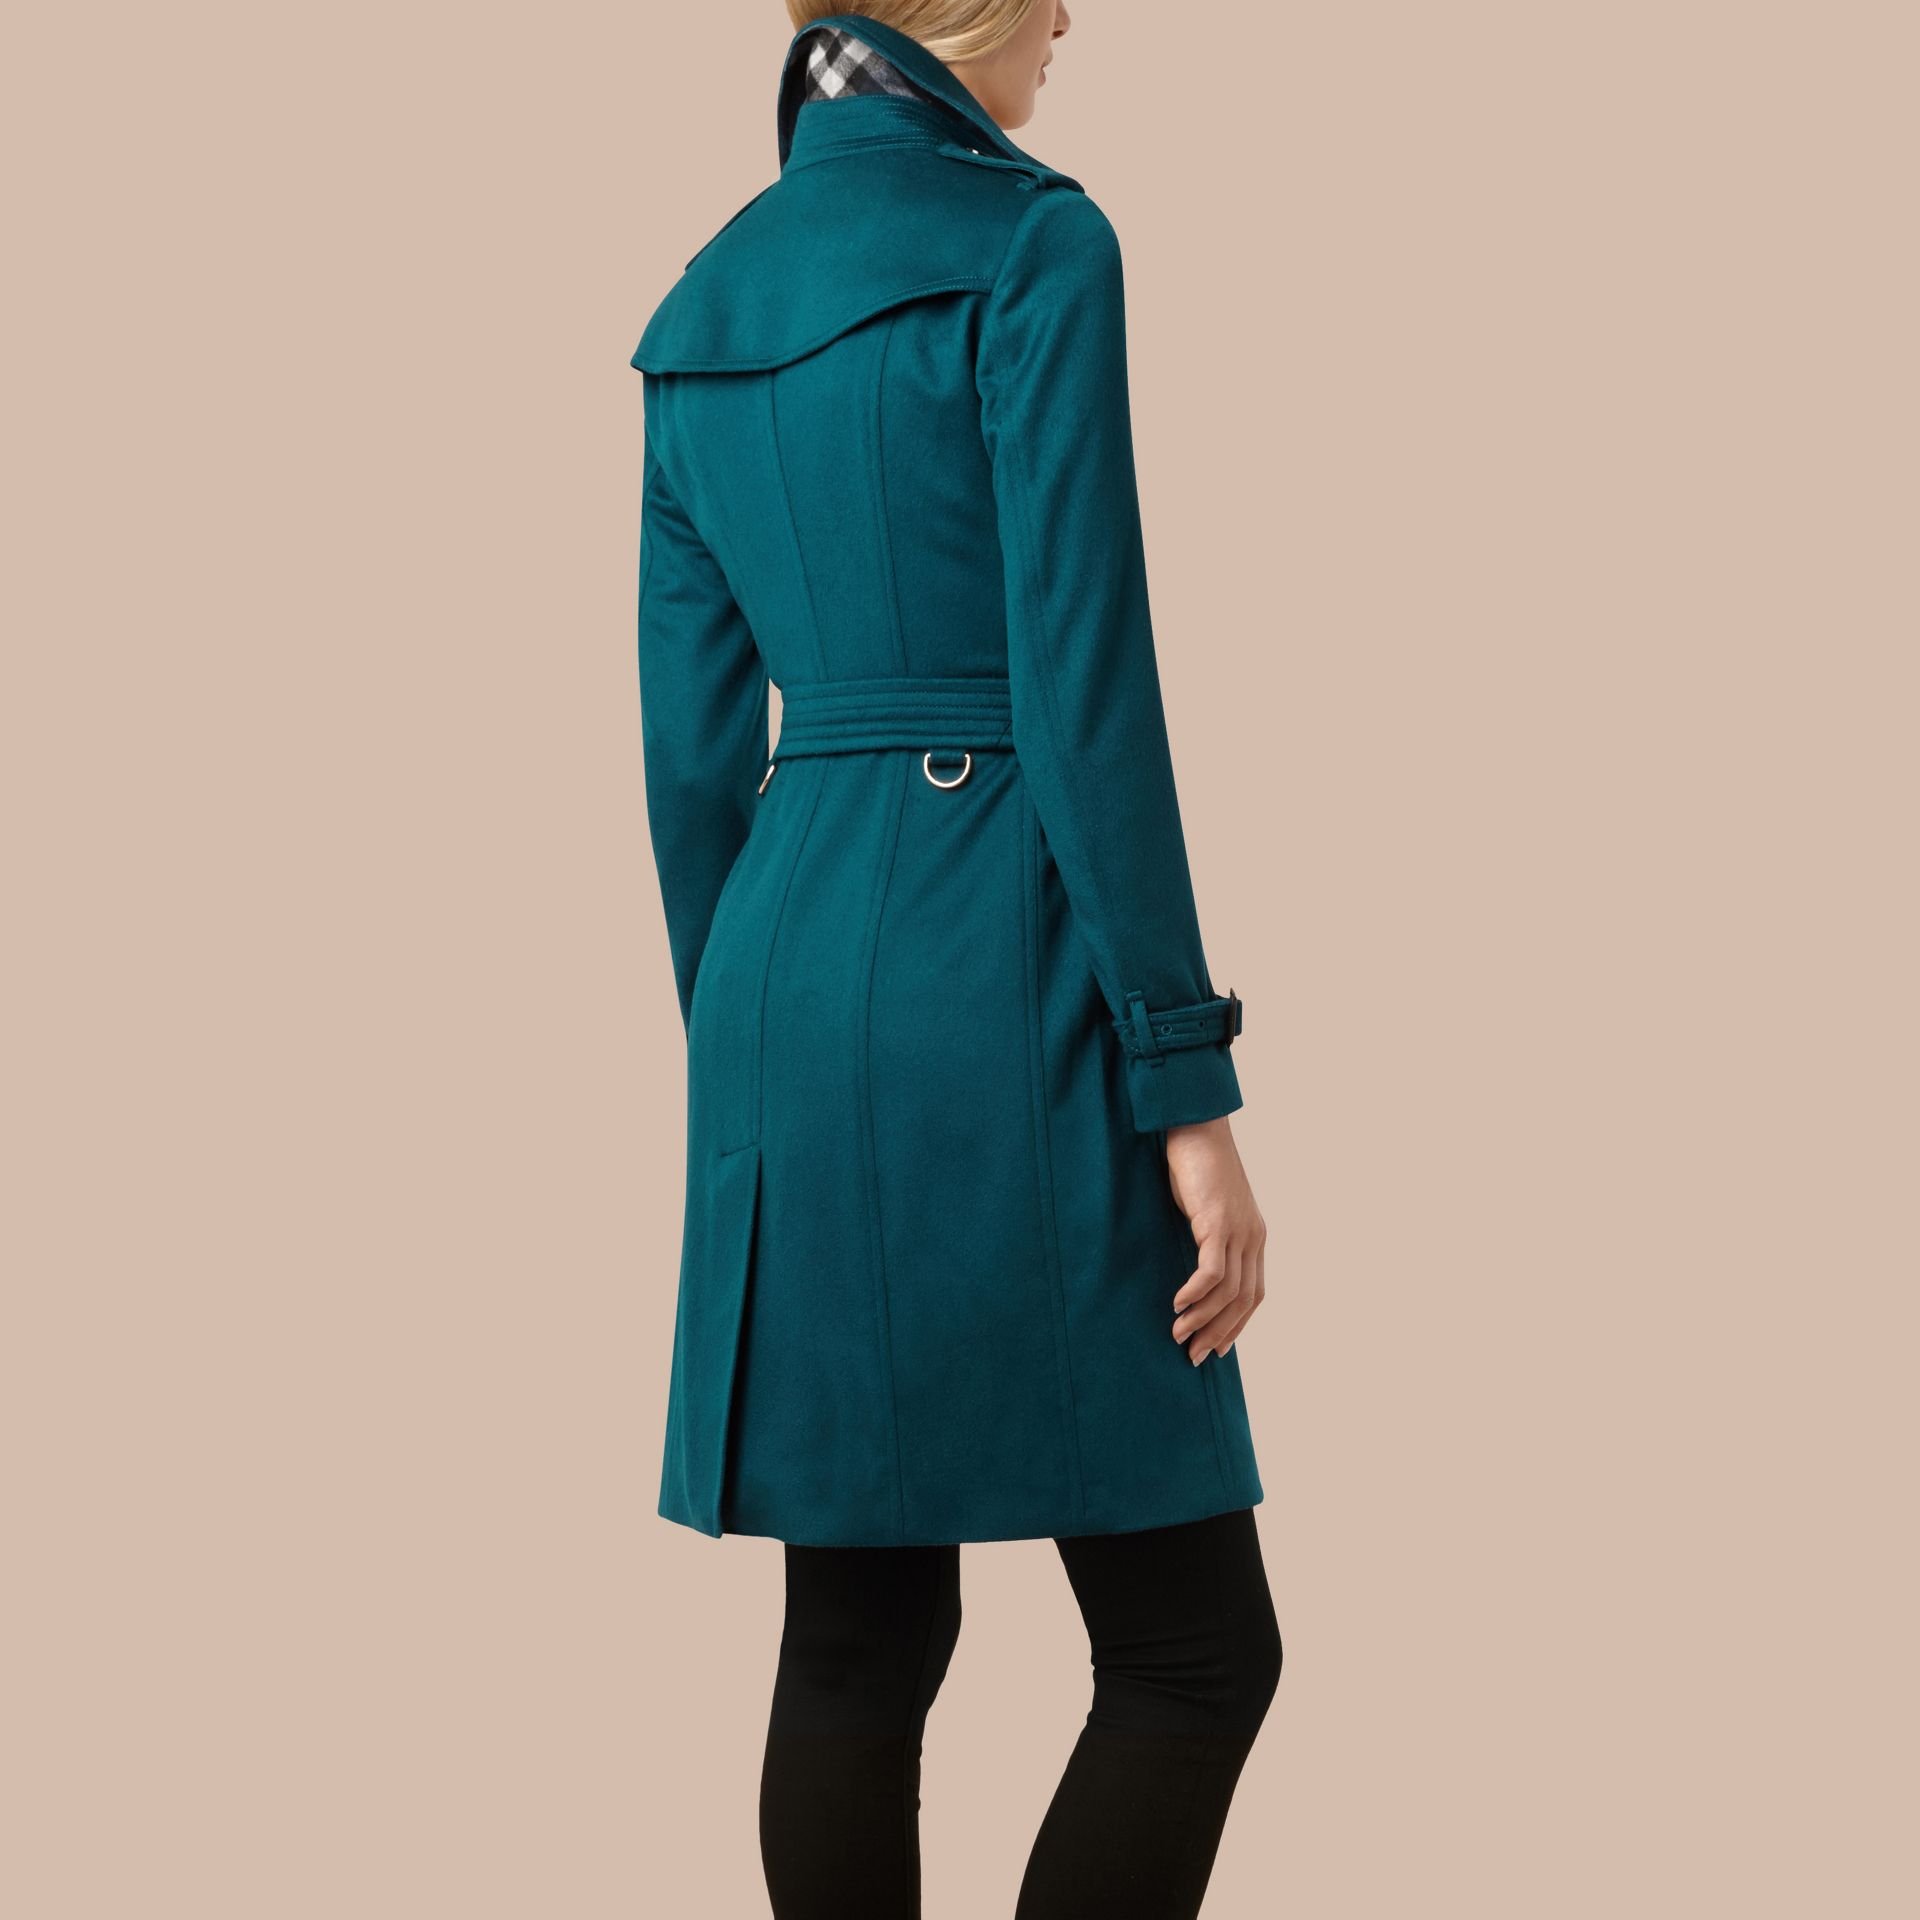 Teal Sandringham Fit Cashmere Trench Coat Teal - gallery image 3